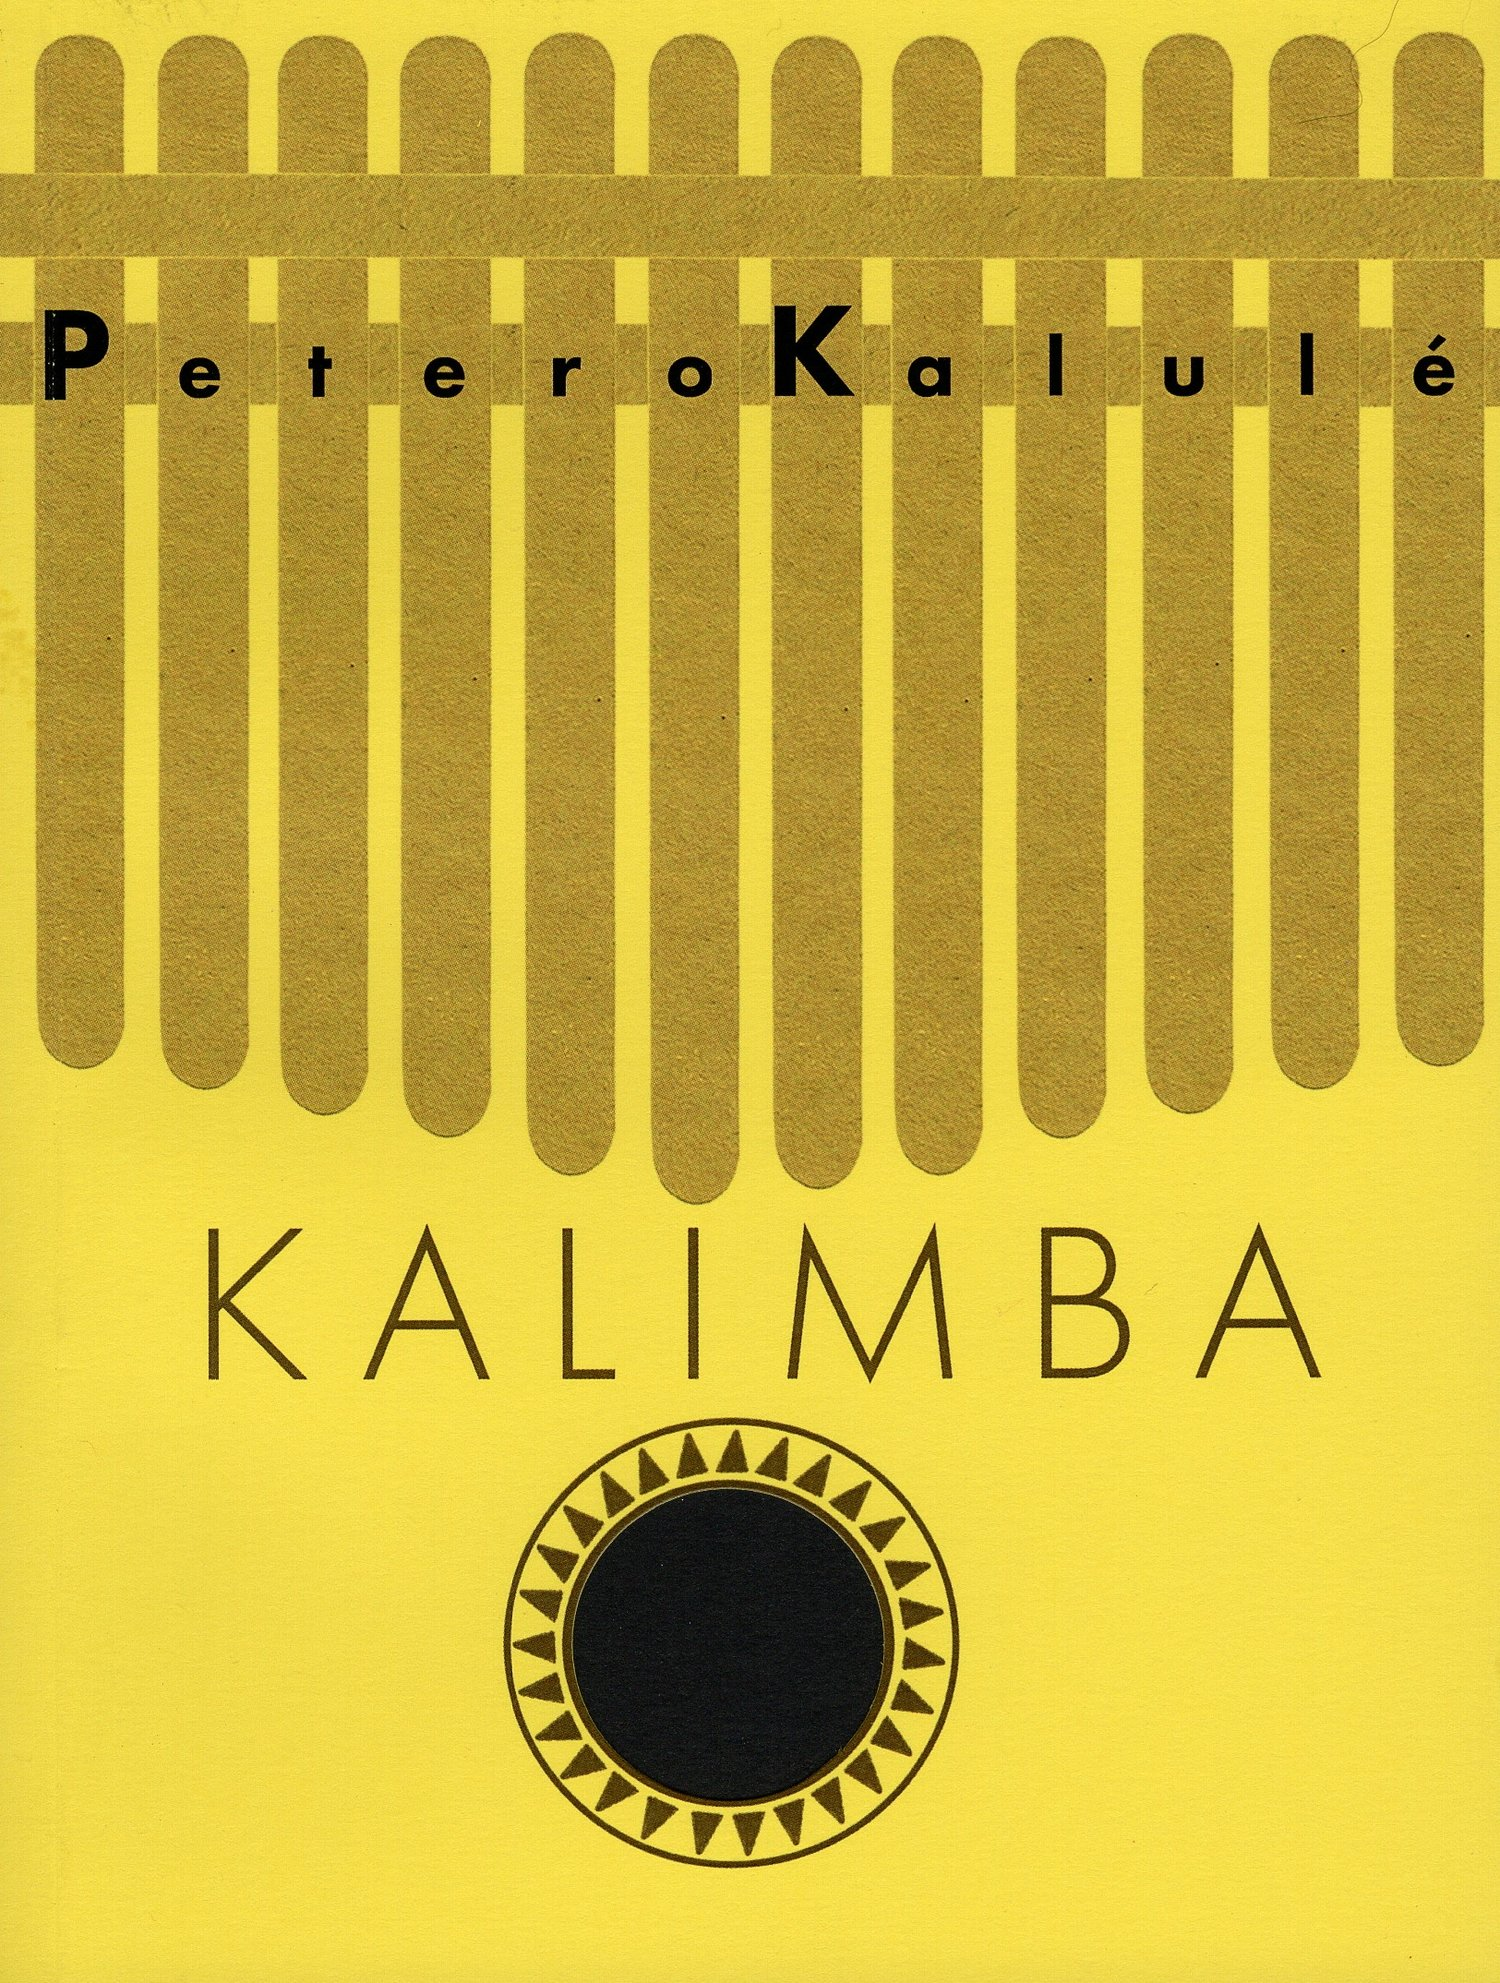 Cover of Kalimba by Petero Kalulé. The cover is yellow with the title in the centre over a black sun-like shape.